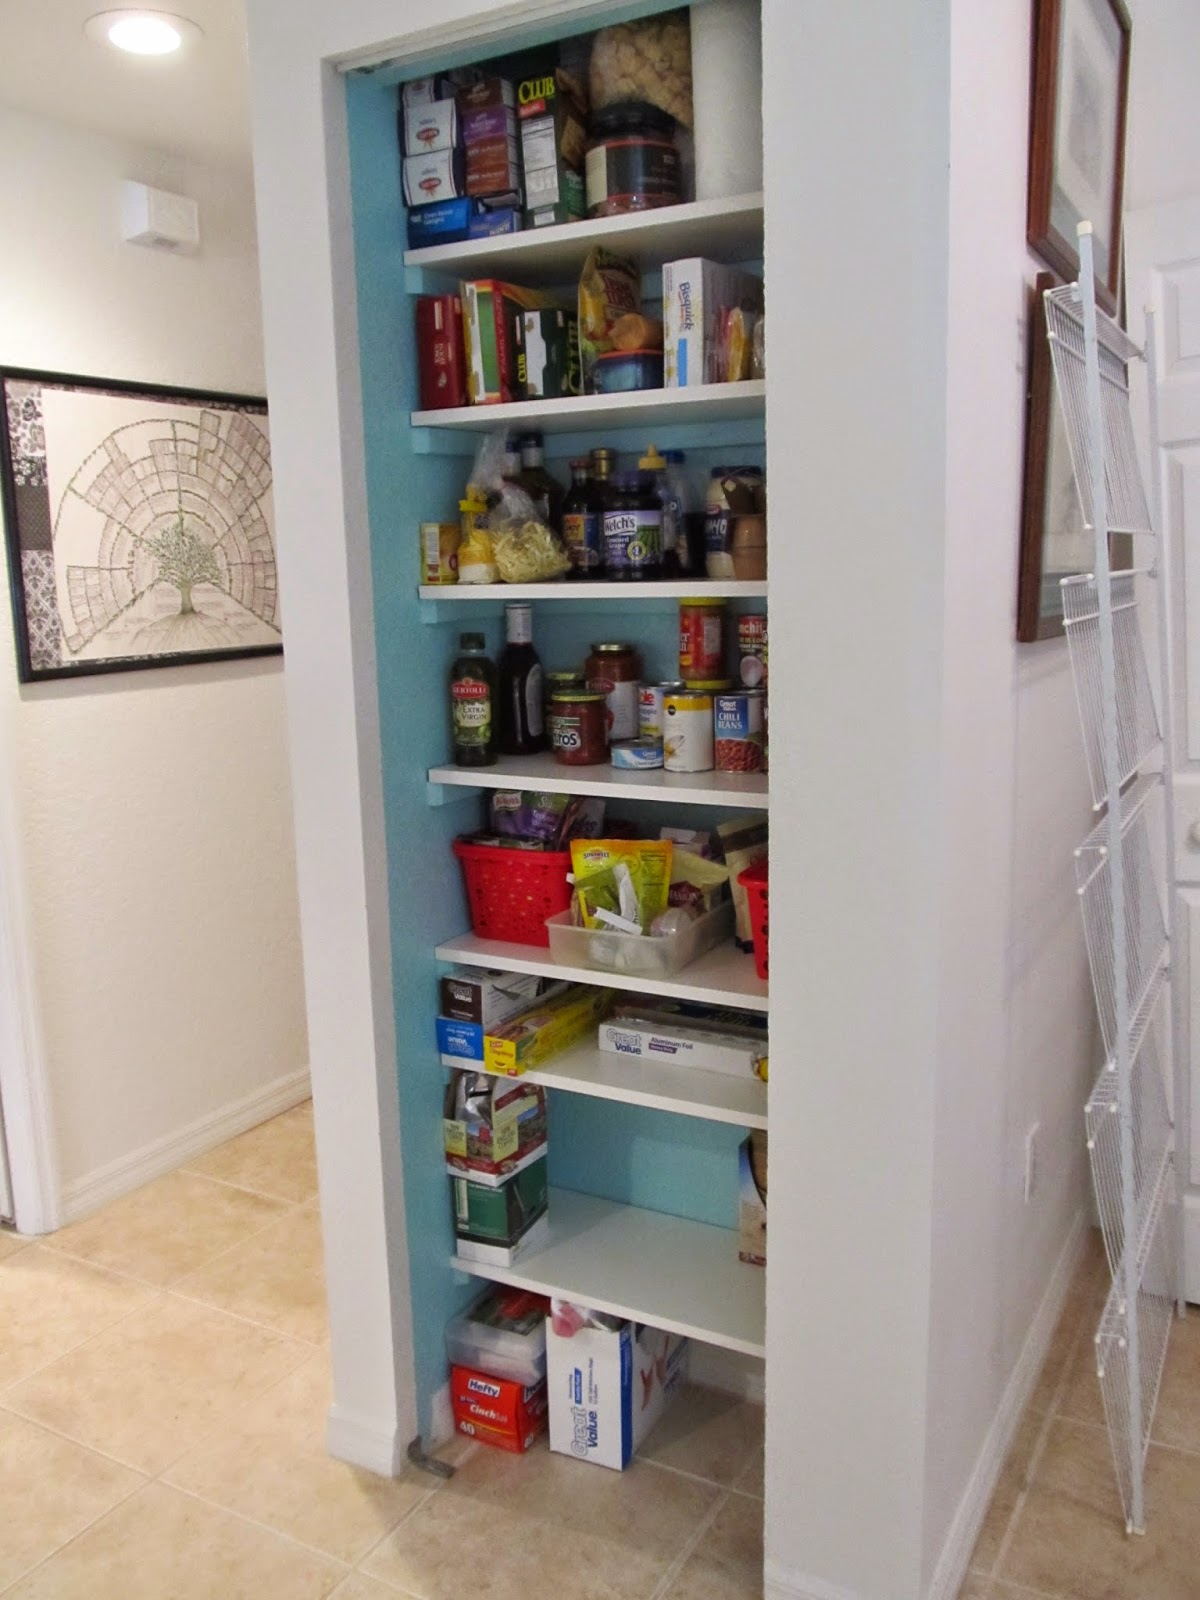 Pantry close re-do with wooden shelves